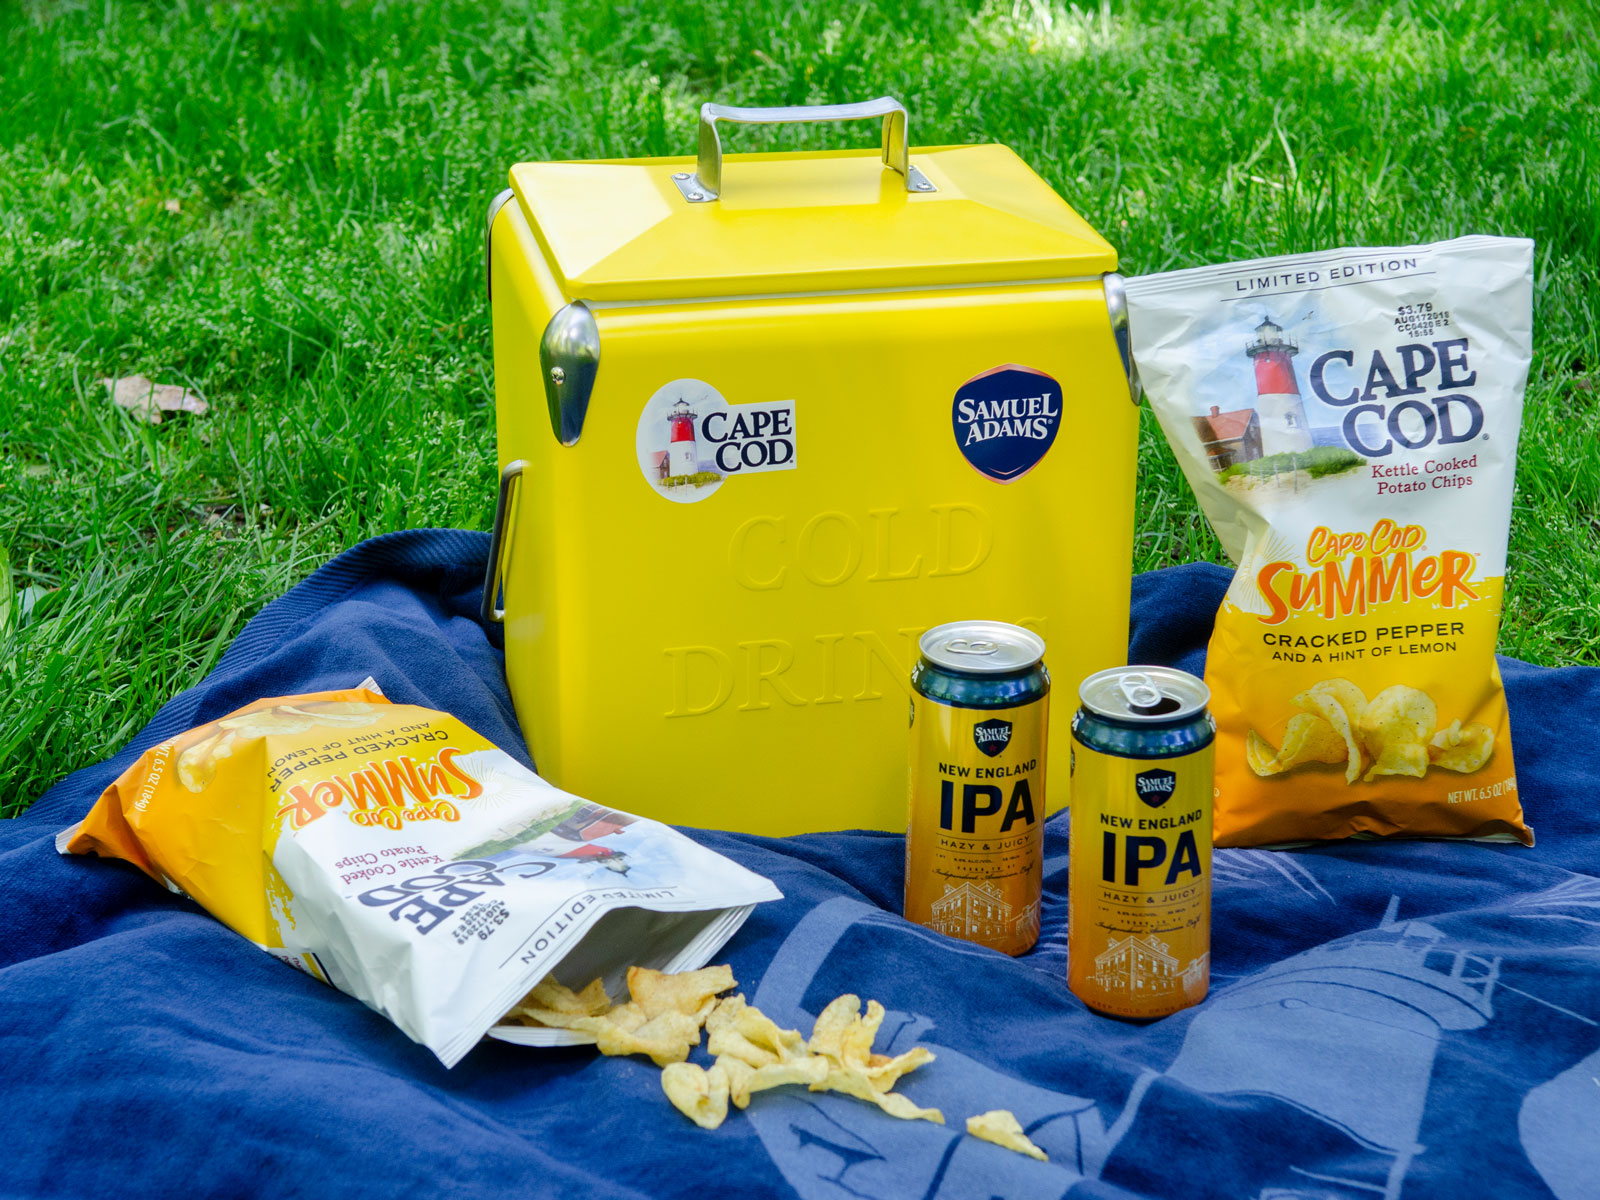 Cape Cod and Sam Adams Collaborated on Potato Chip Flavor That Pairs with a New England IPA